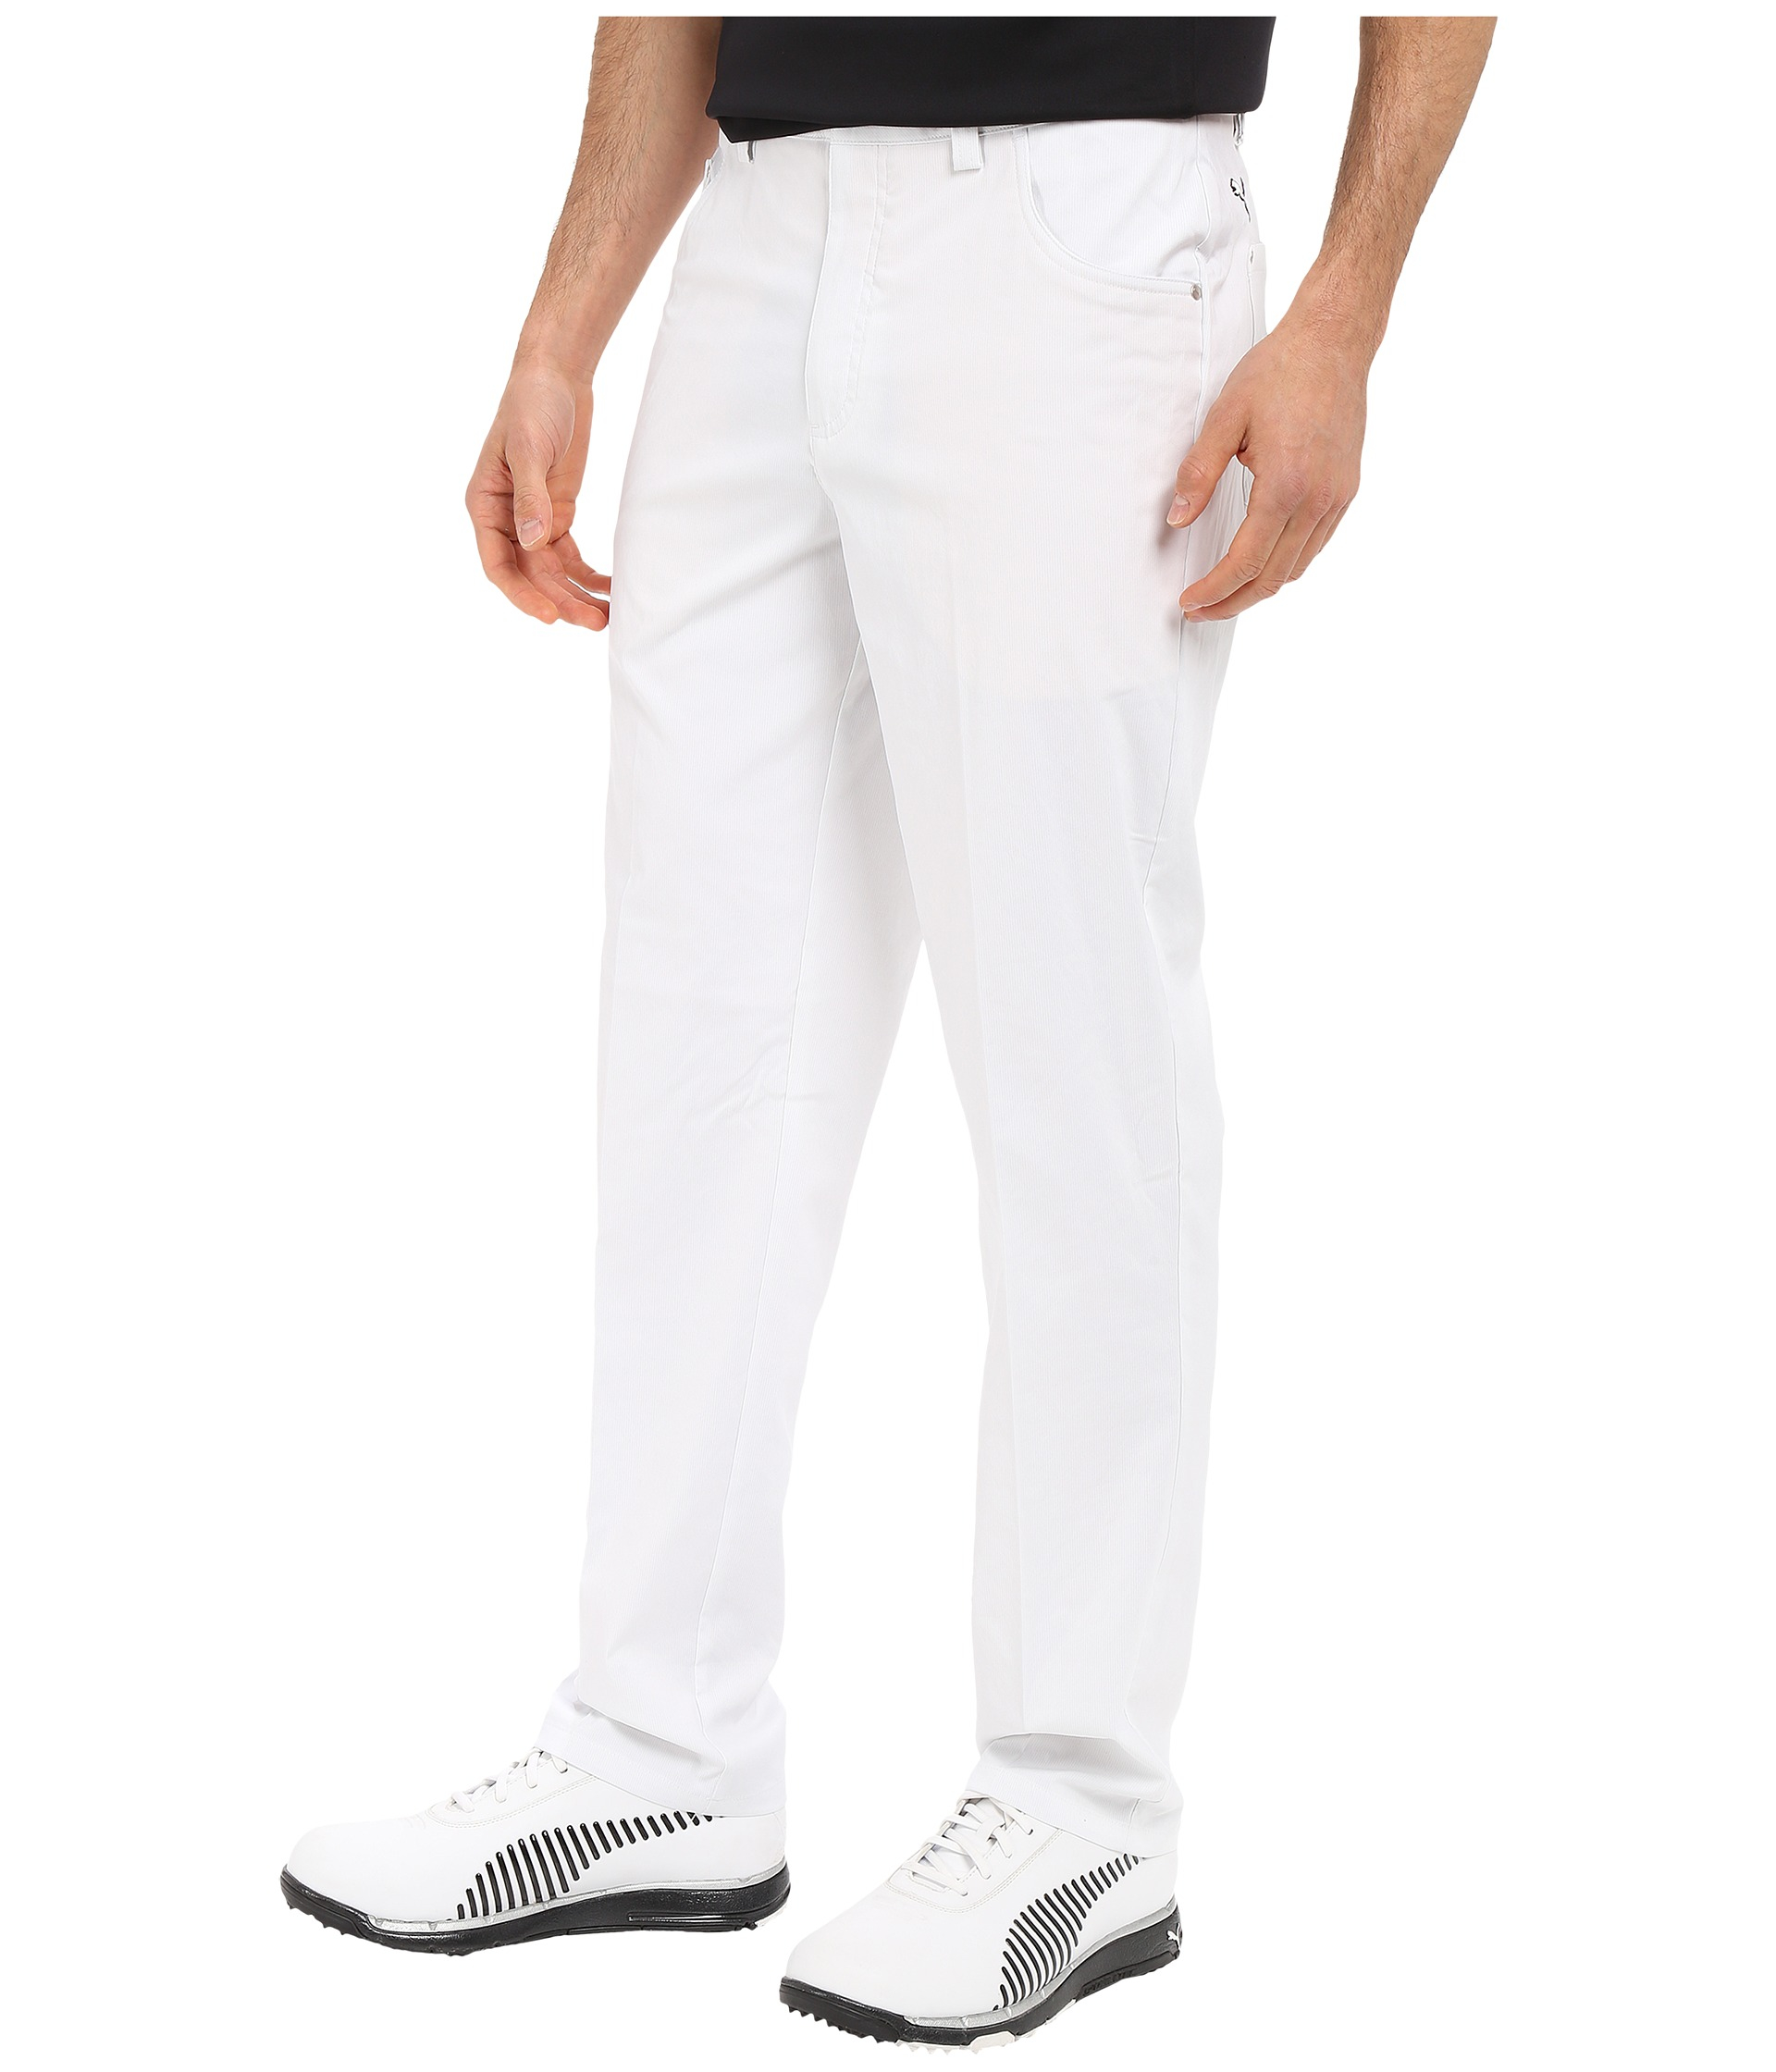 d254e42700a6 Lyst - PUMA 6-pocket Pants in White for Men